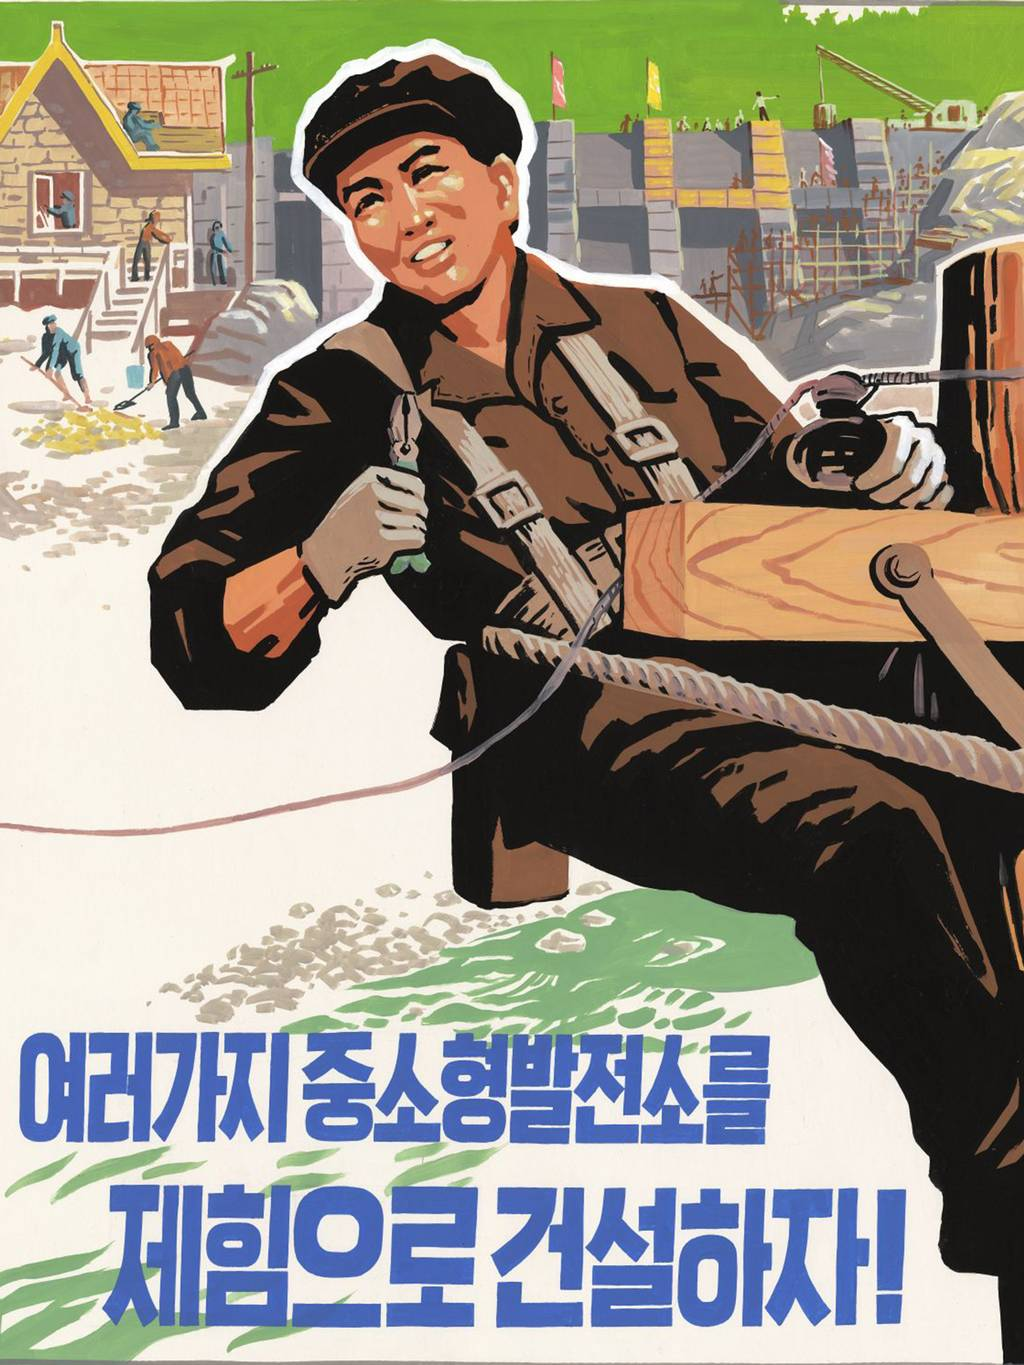 PsyEYKu5enk poster 2.jpg Rare North Korea Propoganda Posters Go On Display For First Time